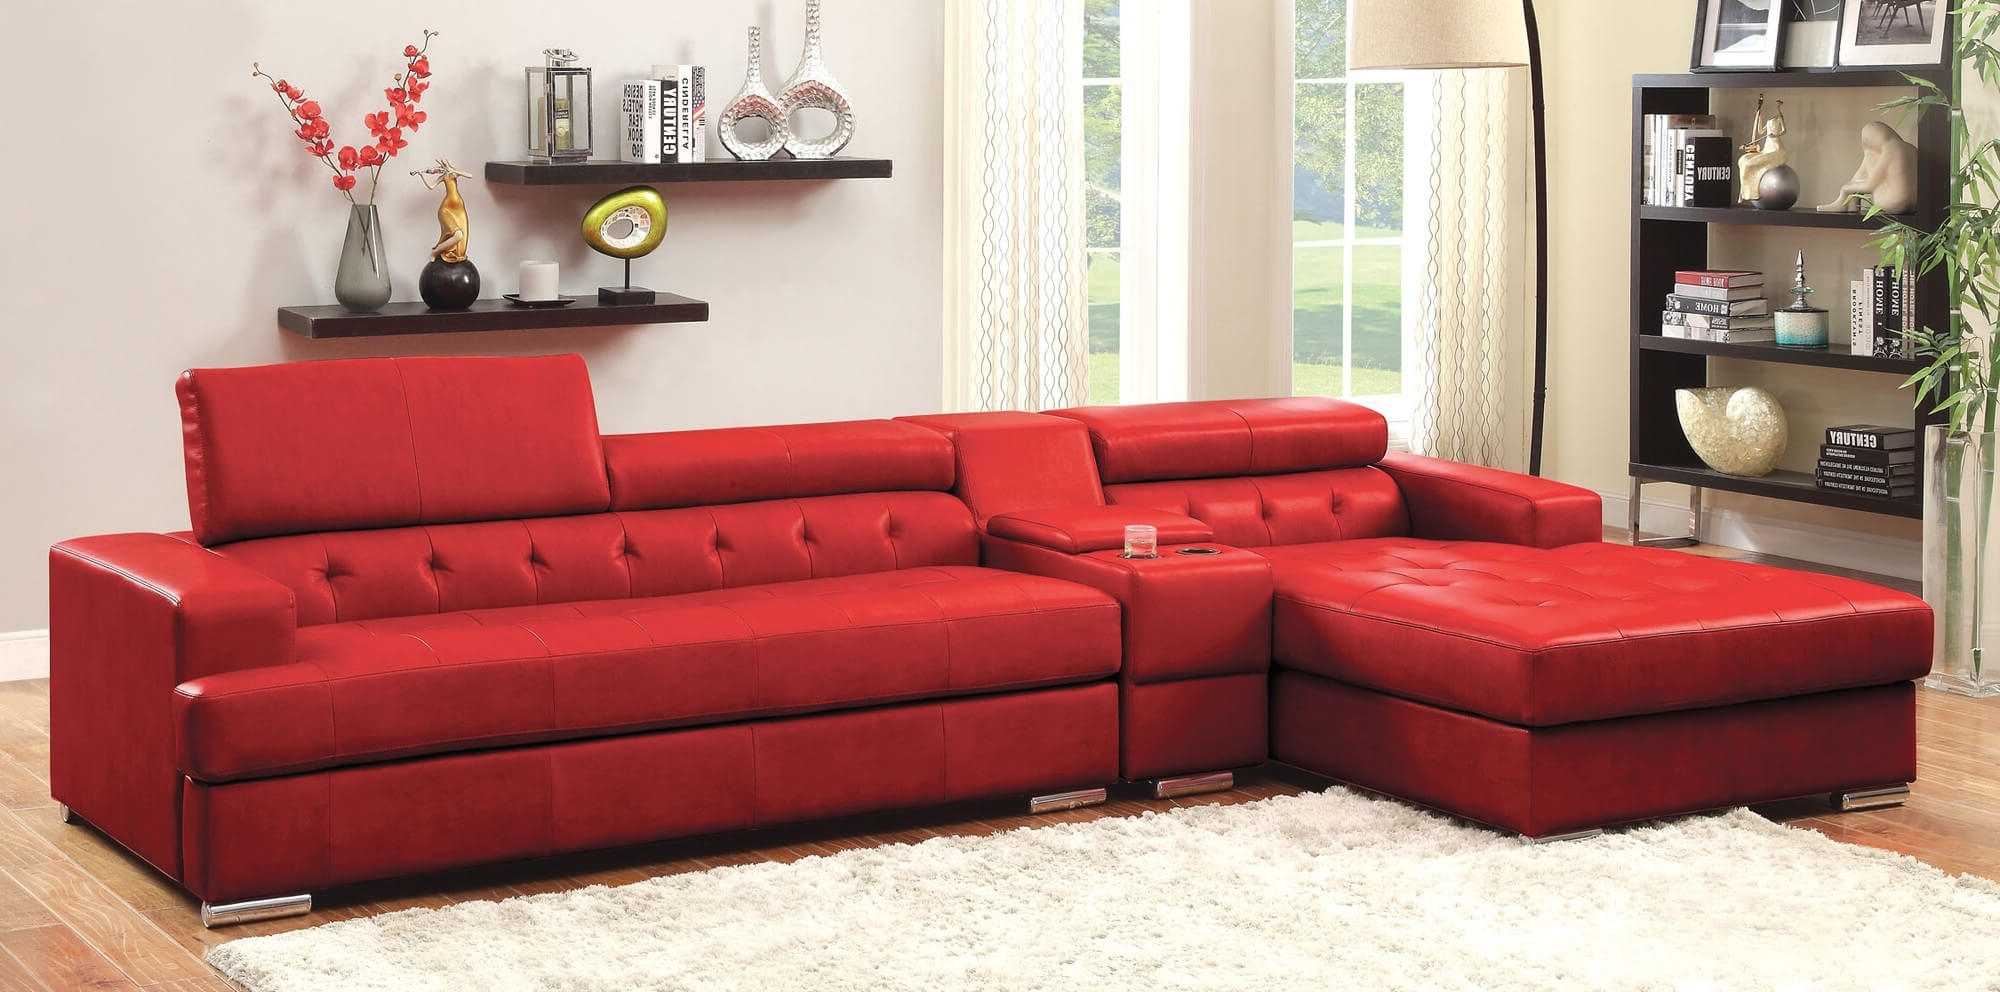 2018 Stylish Modern Red Sectional Sofas For Red Leather Sectionals With Chaise (View 12 of 15)